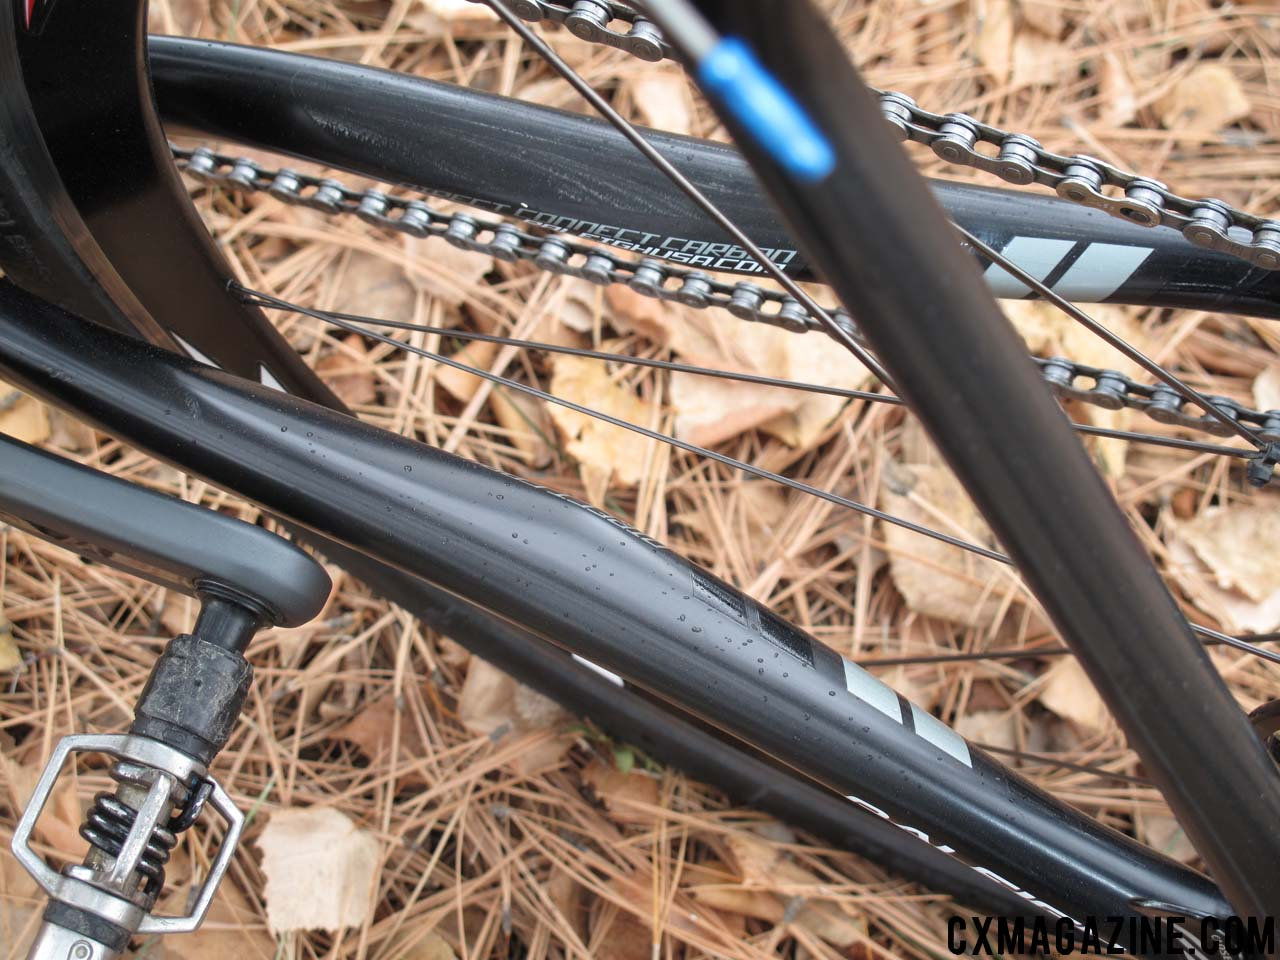 Shaped chain stays customize the ride.